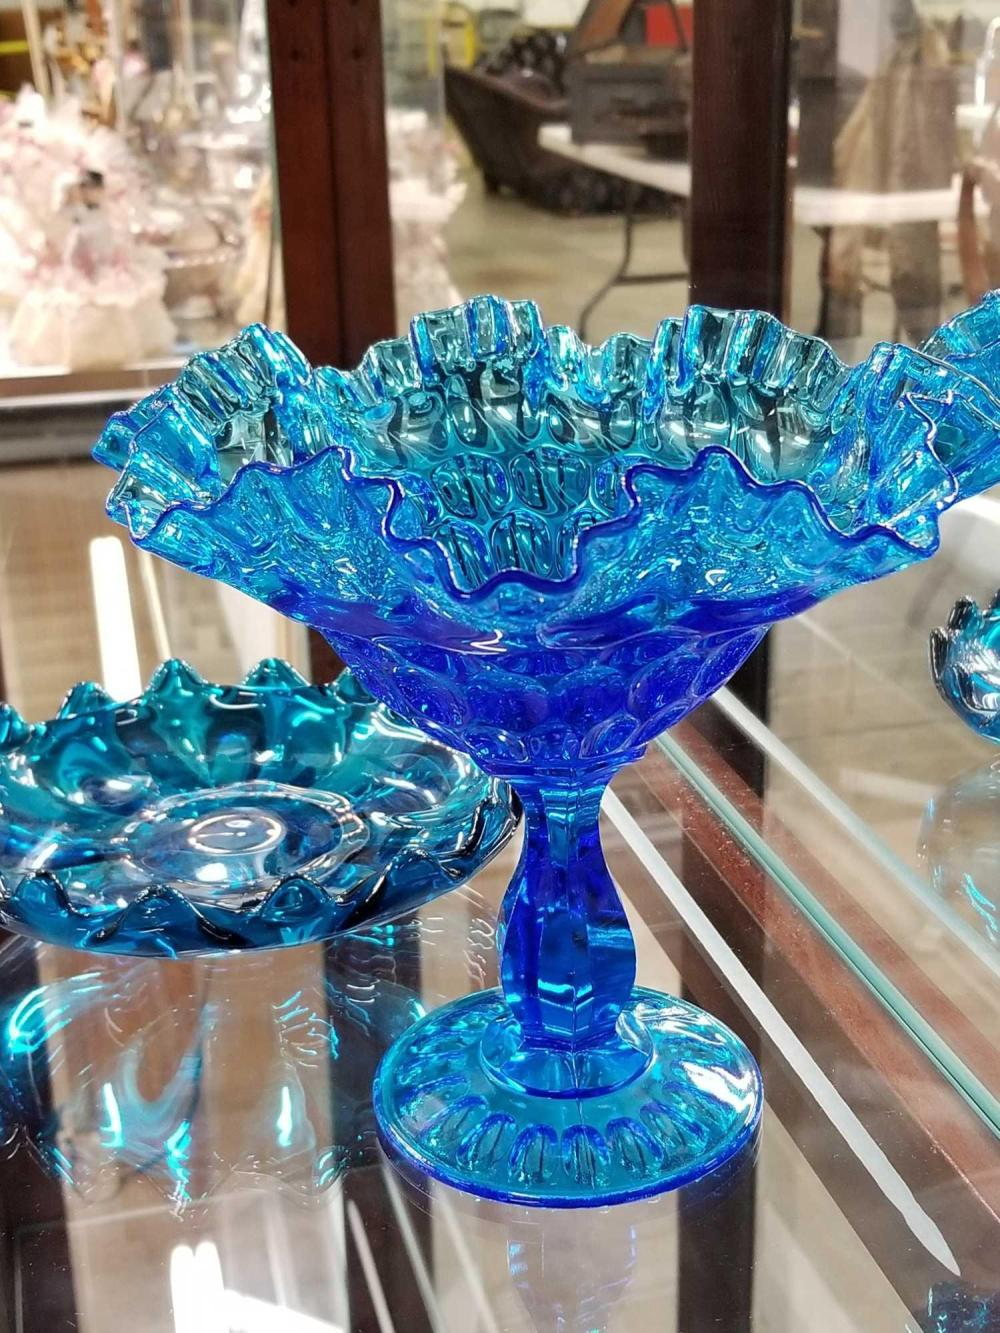 BLUE GLASS RUFFLED COMPOTE & SCALLOPED EDGE SMALL BOWL - 2 ITEMS